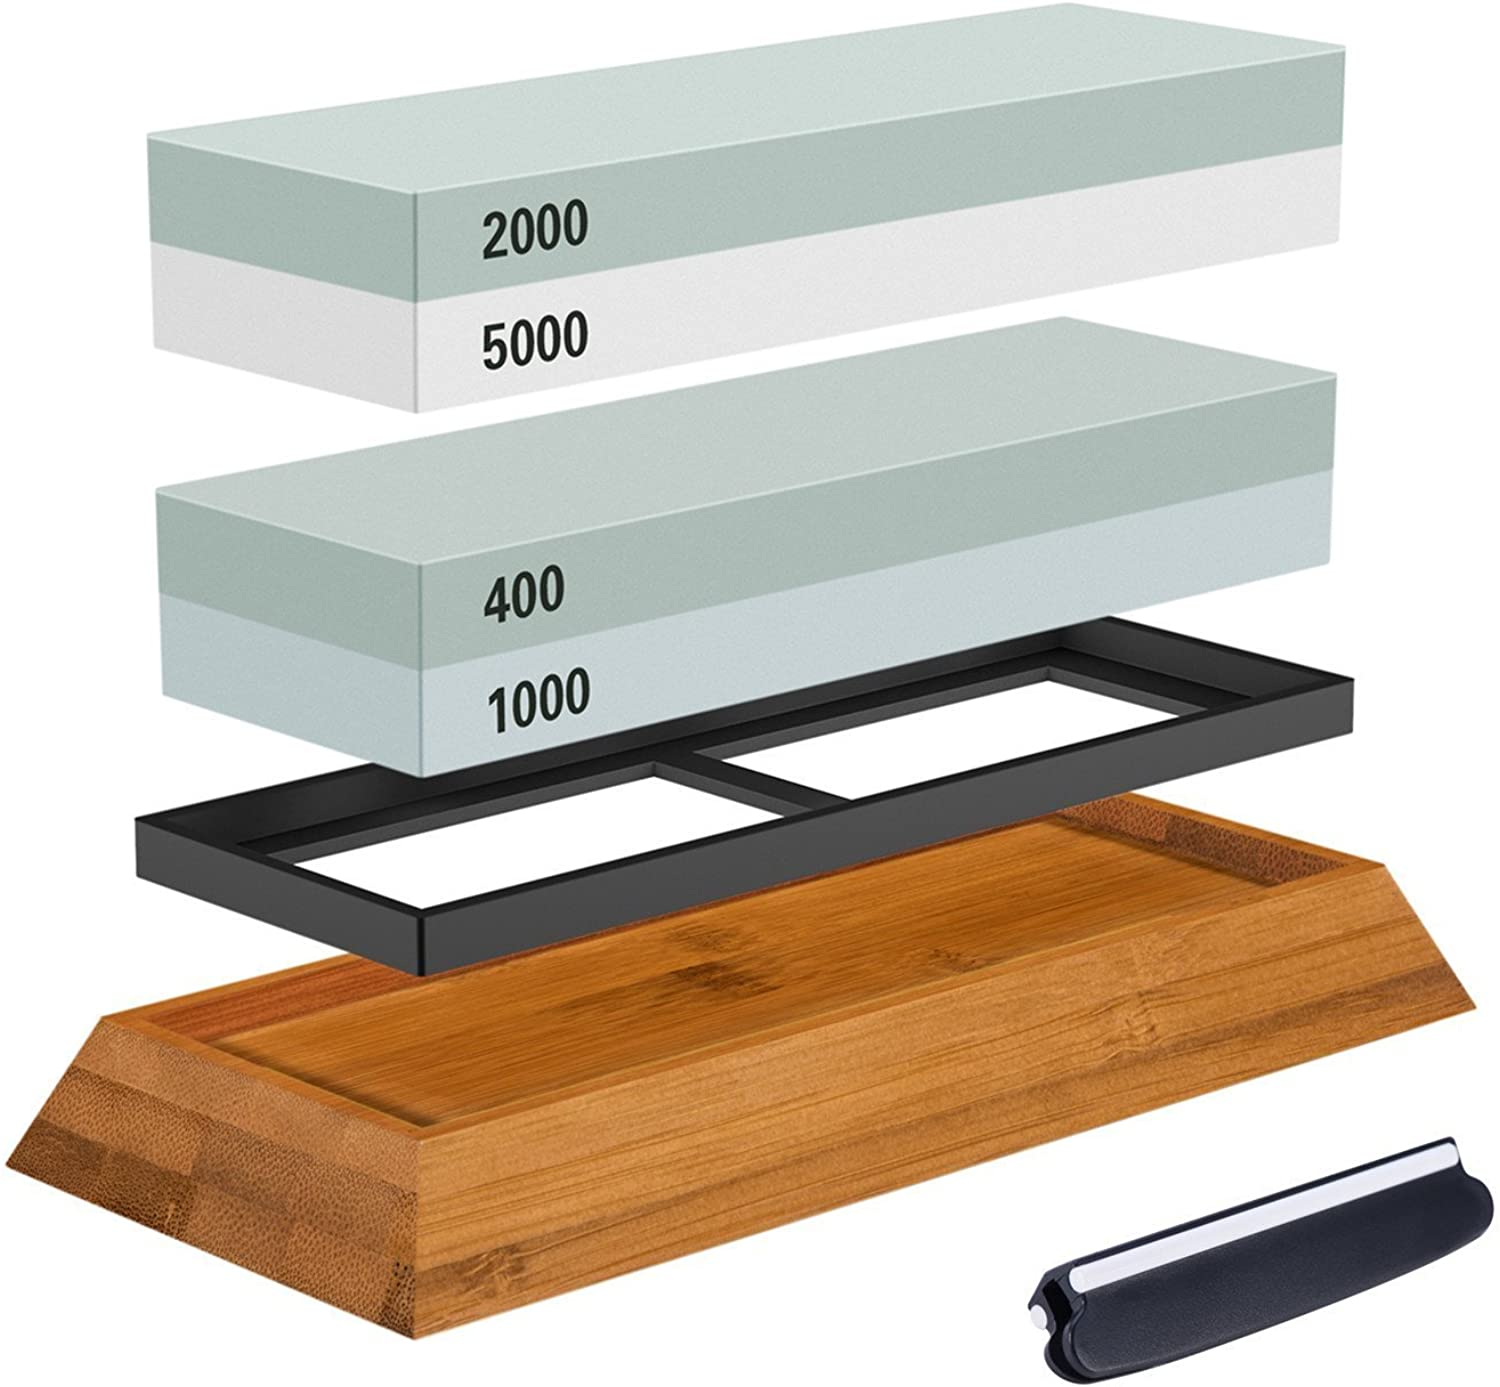 Premium Knife Sharpening Stone Kit, ASEL 4 Side 400 1000 2000 5000 Grit Whetstone, Best Kitchen Blade Sharpener Stone, Non-Slip Bamboo Base and Bonus Angle Guide Included